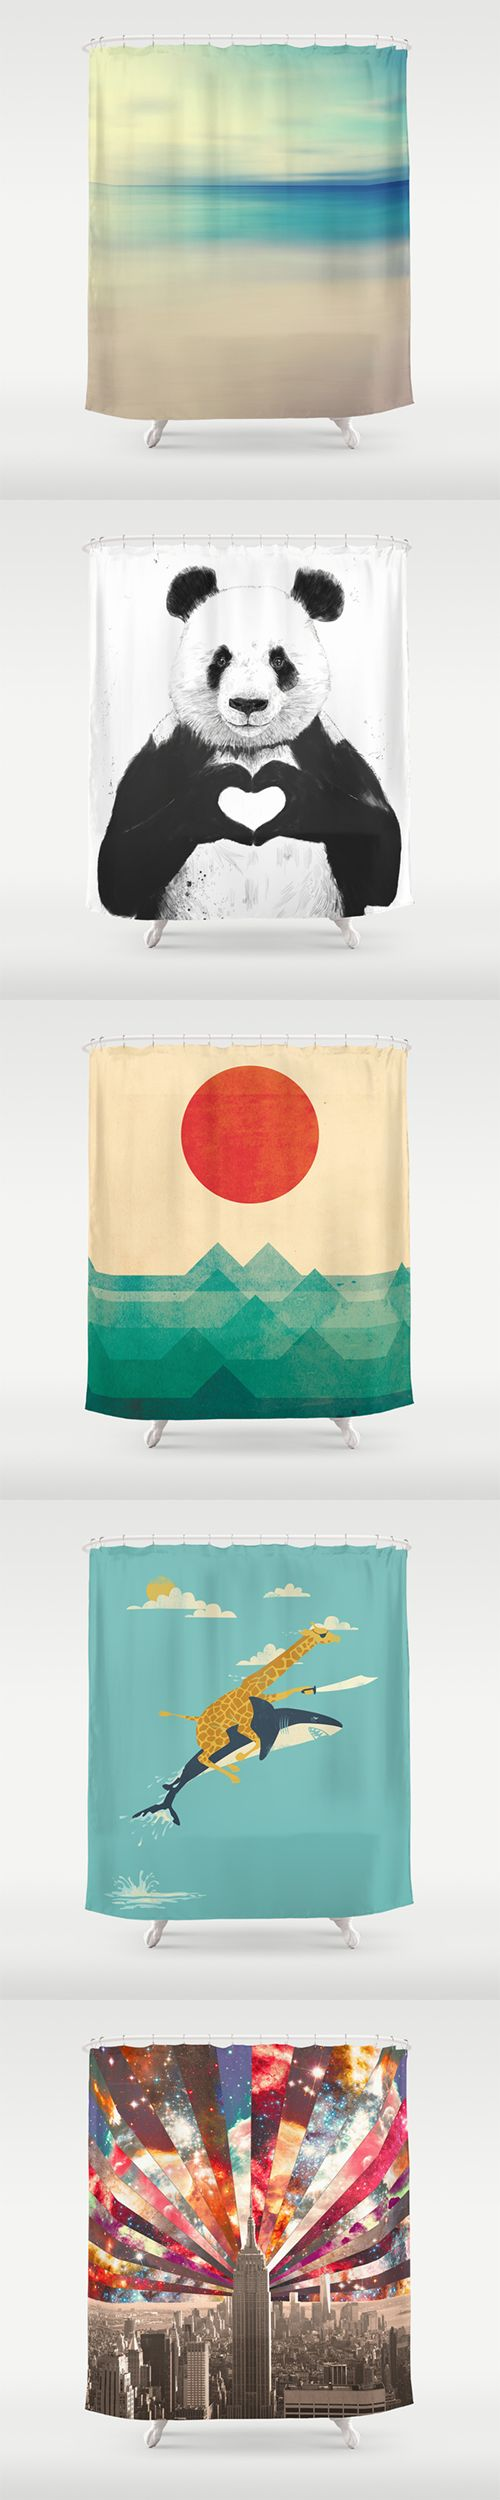 Shower Curtains and millions of other products available at Society6.com today. Every purchase supports independent art and the artist that created it.: